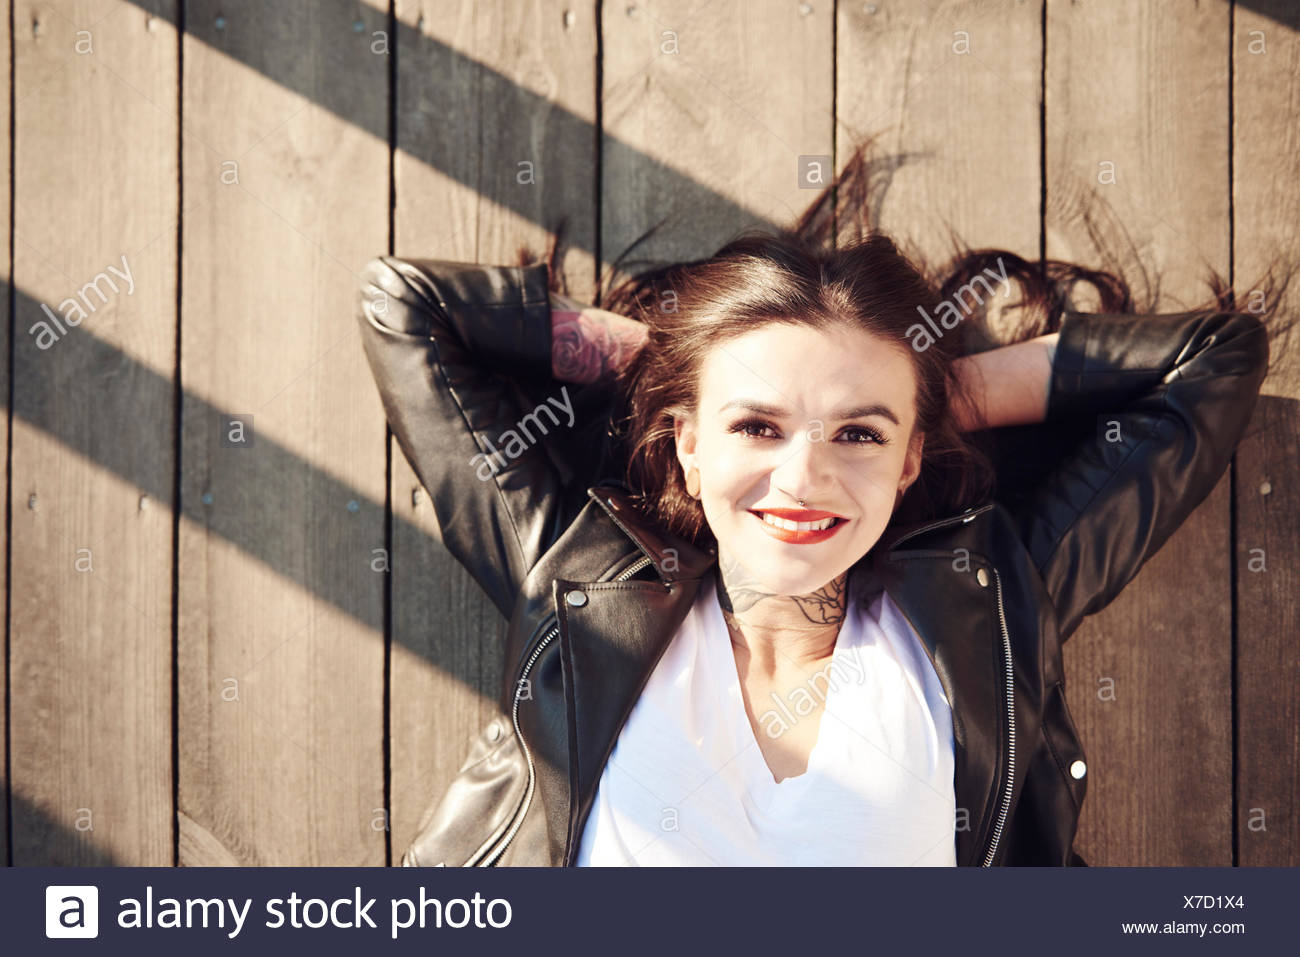 Portrait of young woman lying on wooden decking, hands behind head, smiling, overhead view - Stock Image